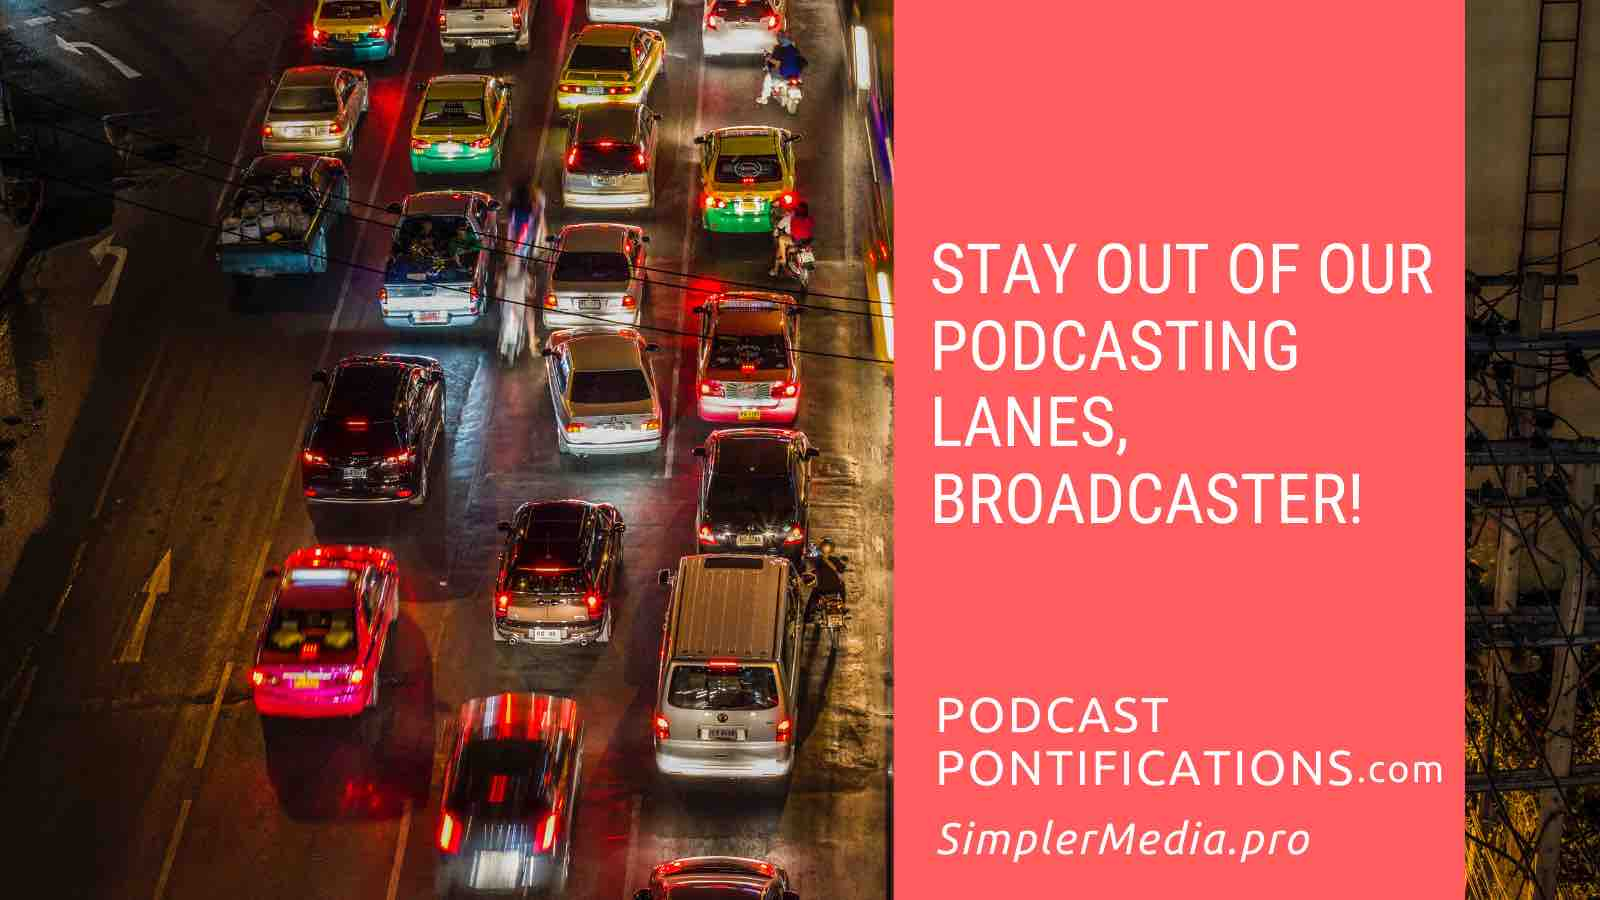 Stay Out Of Our Podcasting Lanes, Broadcasters!